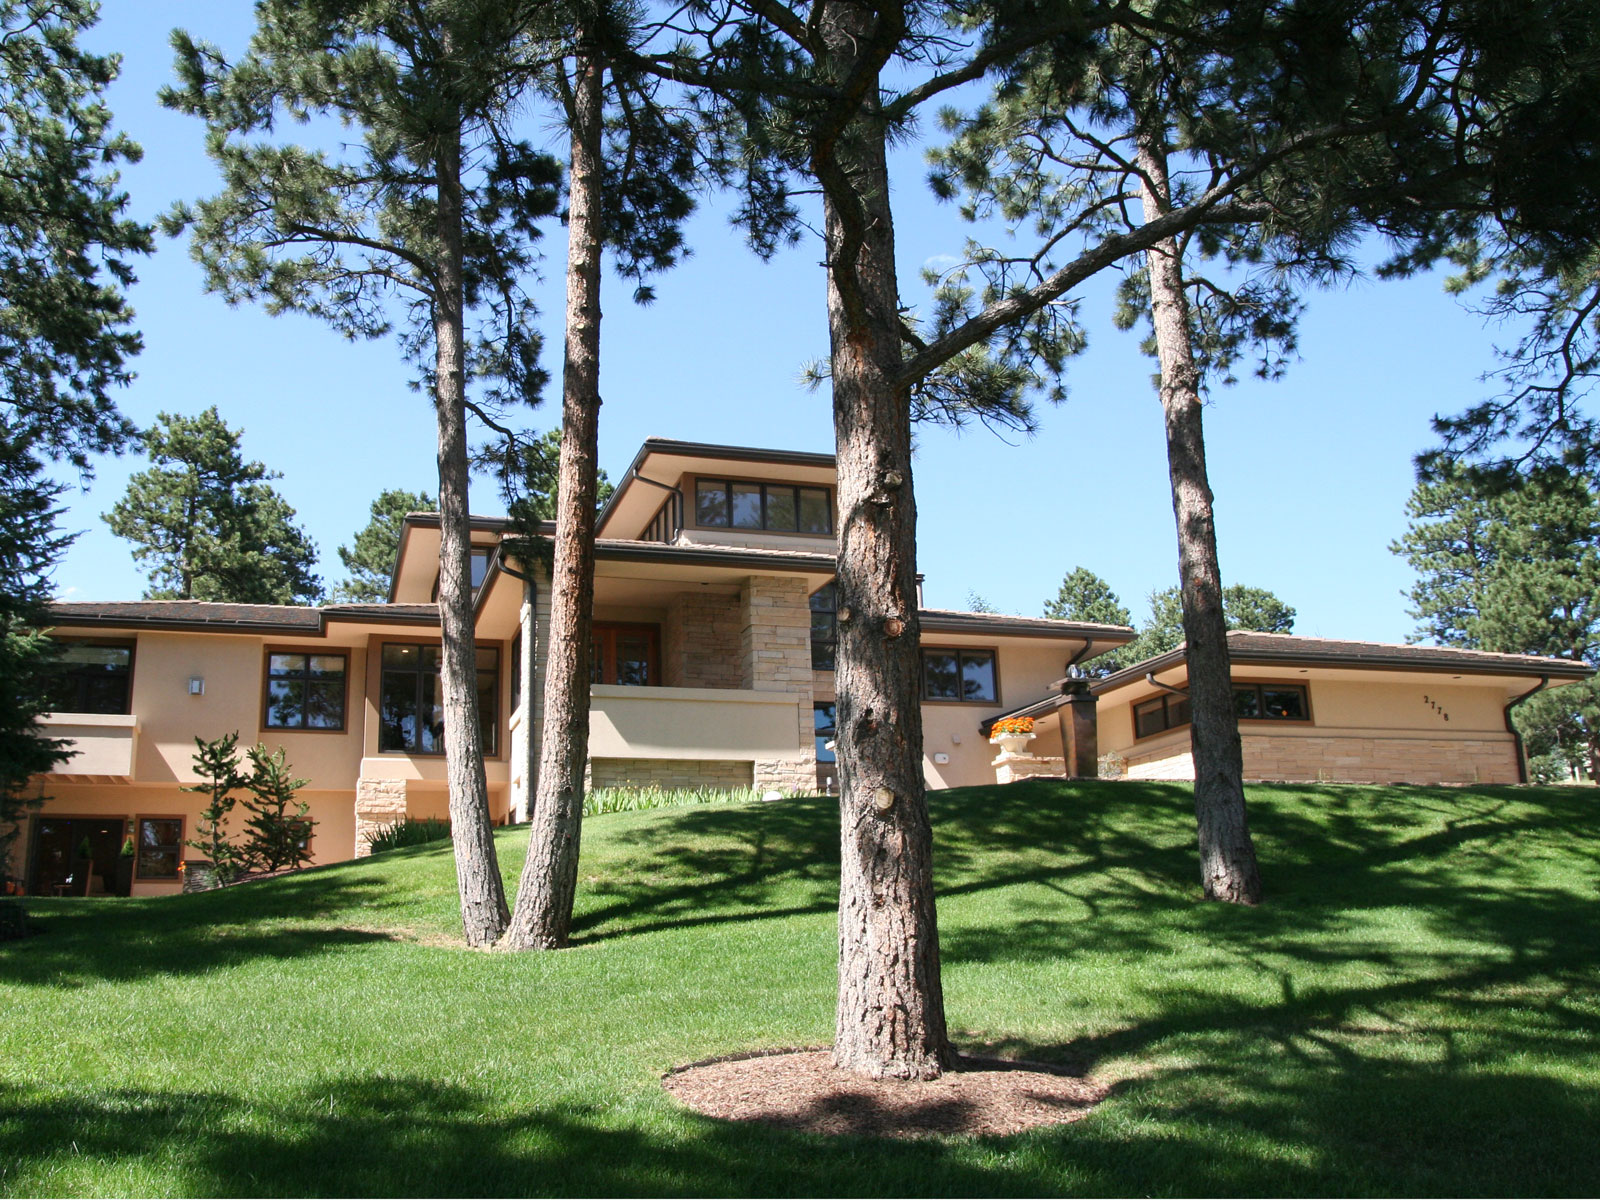 Single Family Home for Sale at 2778 Keystone Drive Evergreen, Colorado 80439 United States